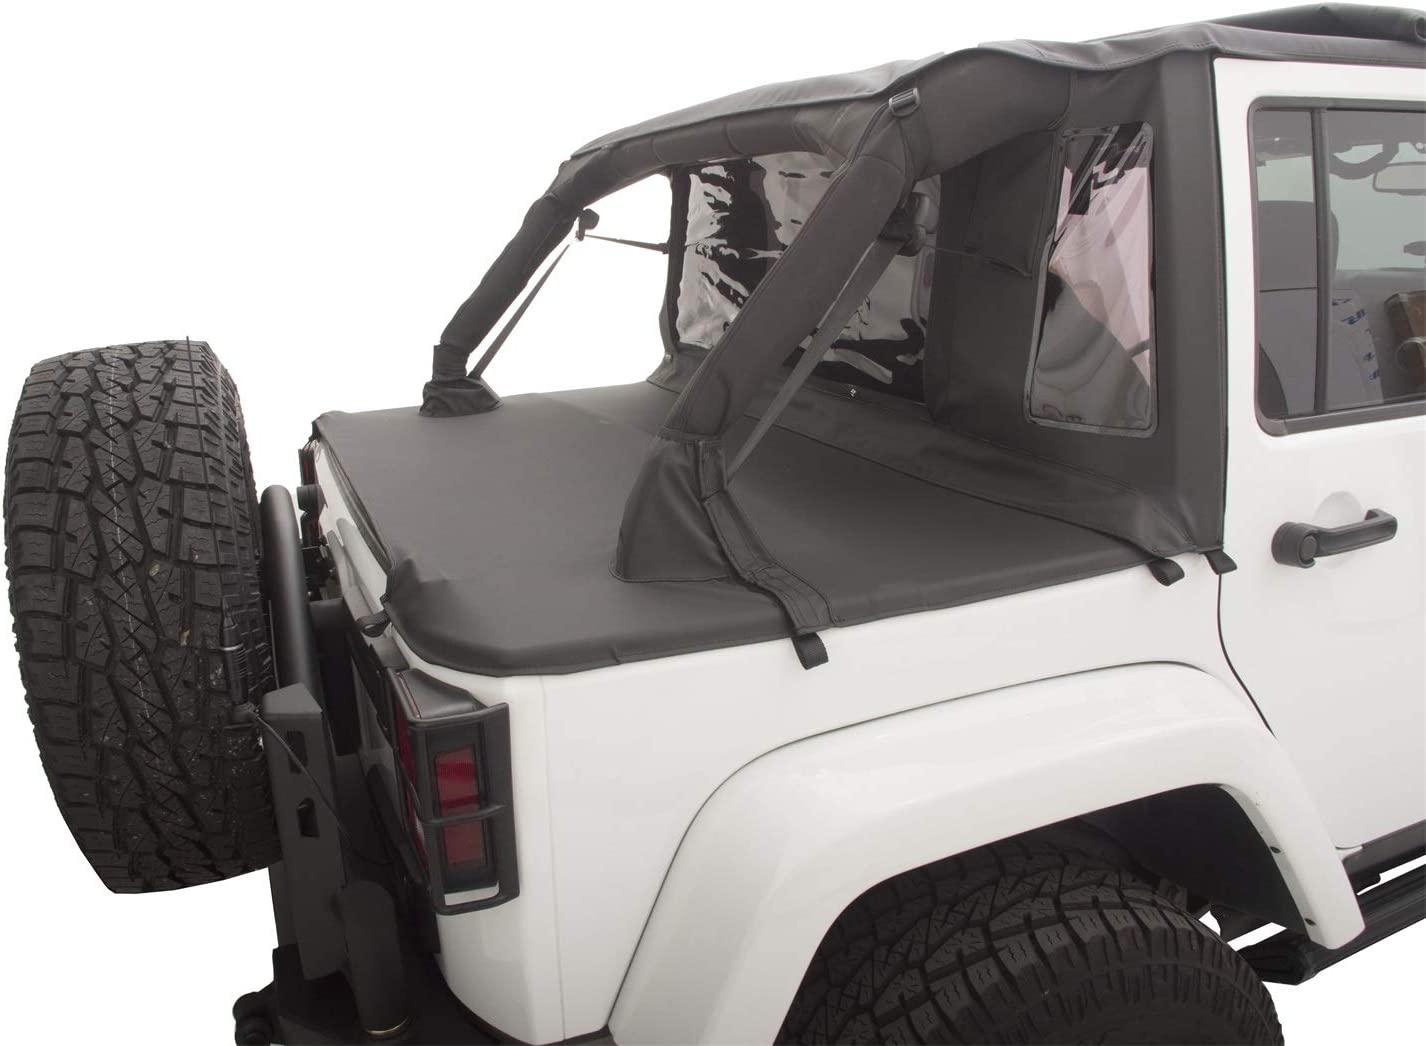 Jeep Jk Soft Top >> Rampage Products 990135 Black Trailview Soft Top With Tonneau Style Rear Cover For Jeep Jk Unlimited 4 Door 2007 2017